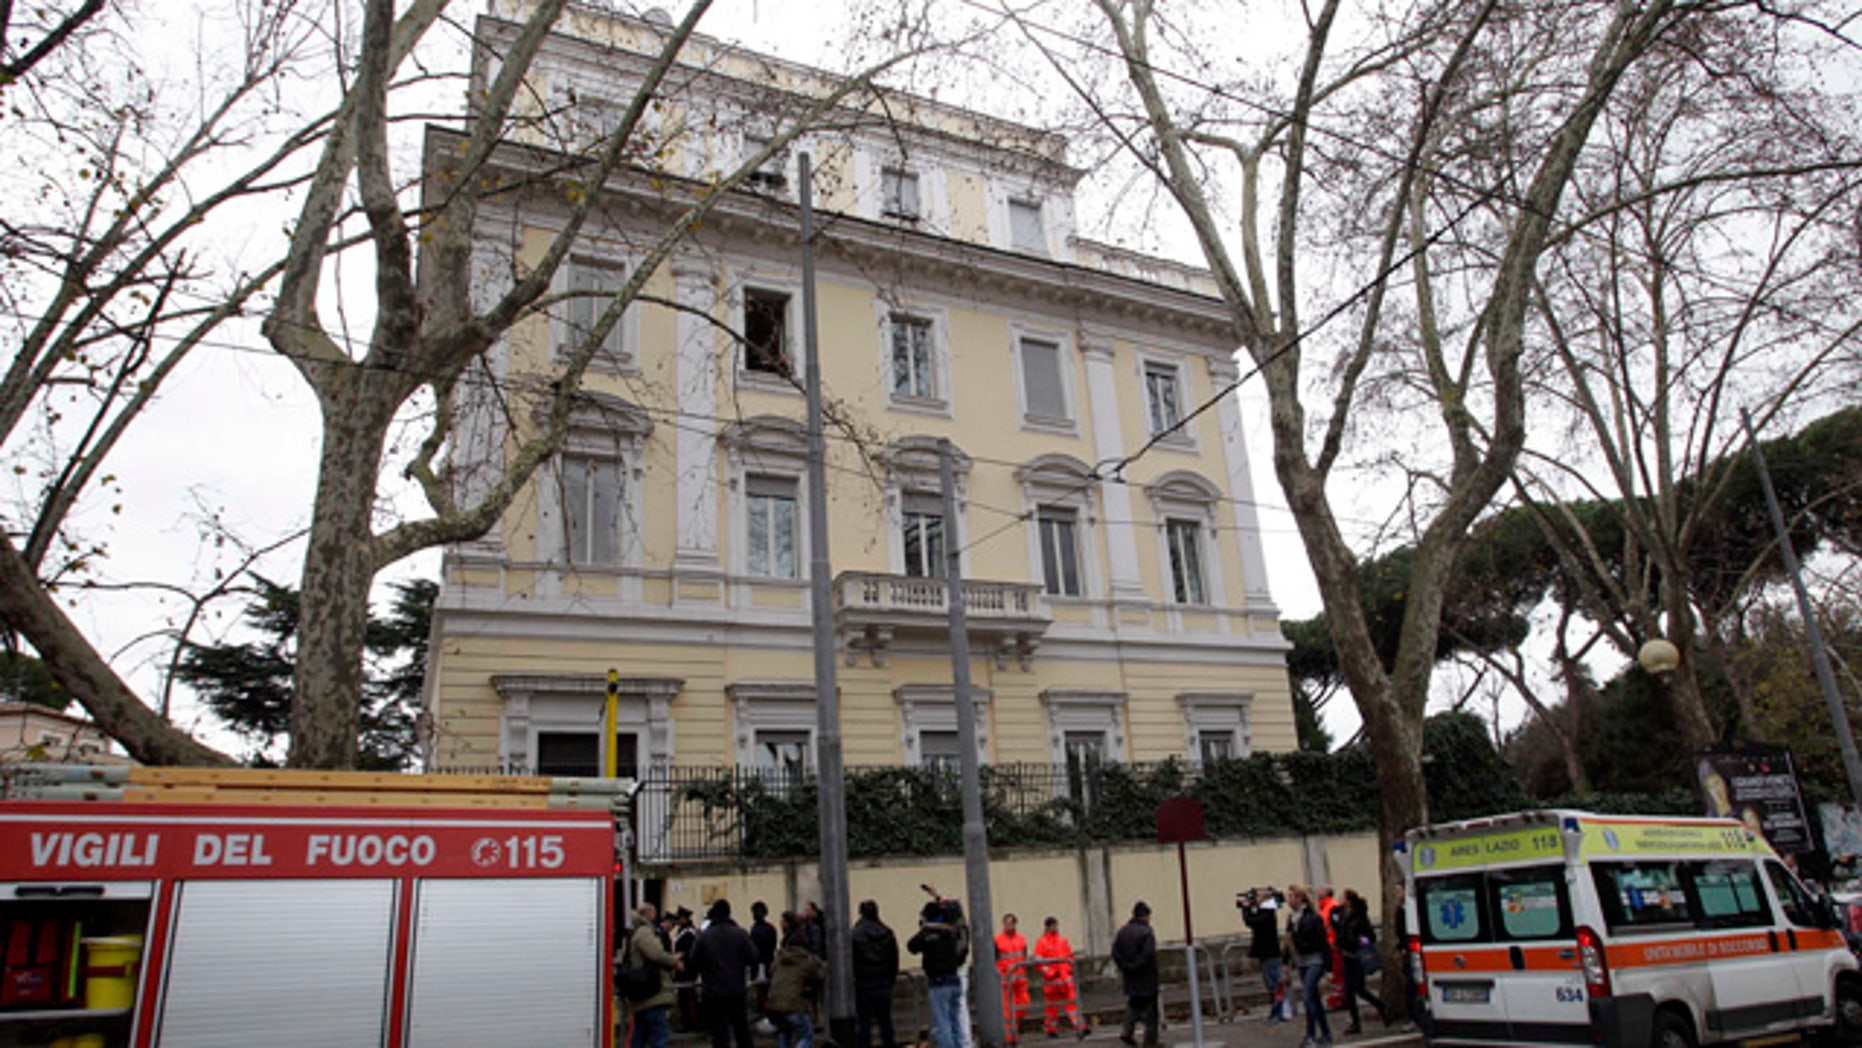 Dec. 27: Firefighters stand outside the Greek Embassy in Rome. A package bomb was found at the Greek Embassy in Rome on Monday, four days after similar mail bombs exploded at two other embassies injuring two people. The device was defused and no one was injured. (AP)